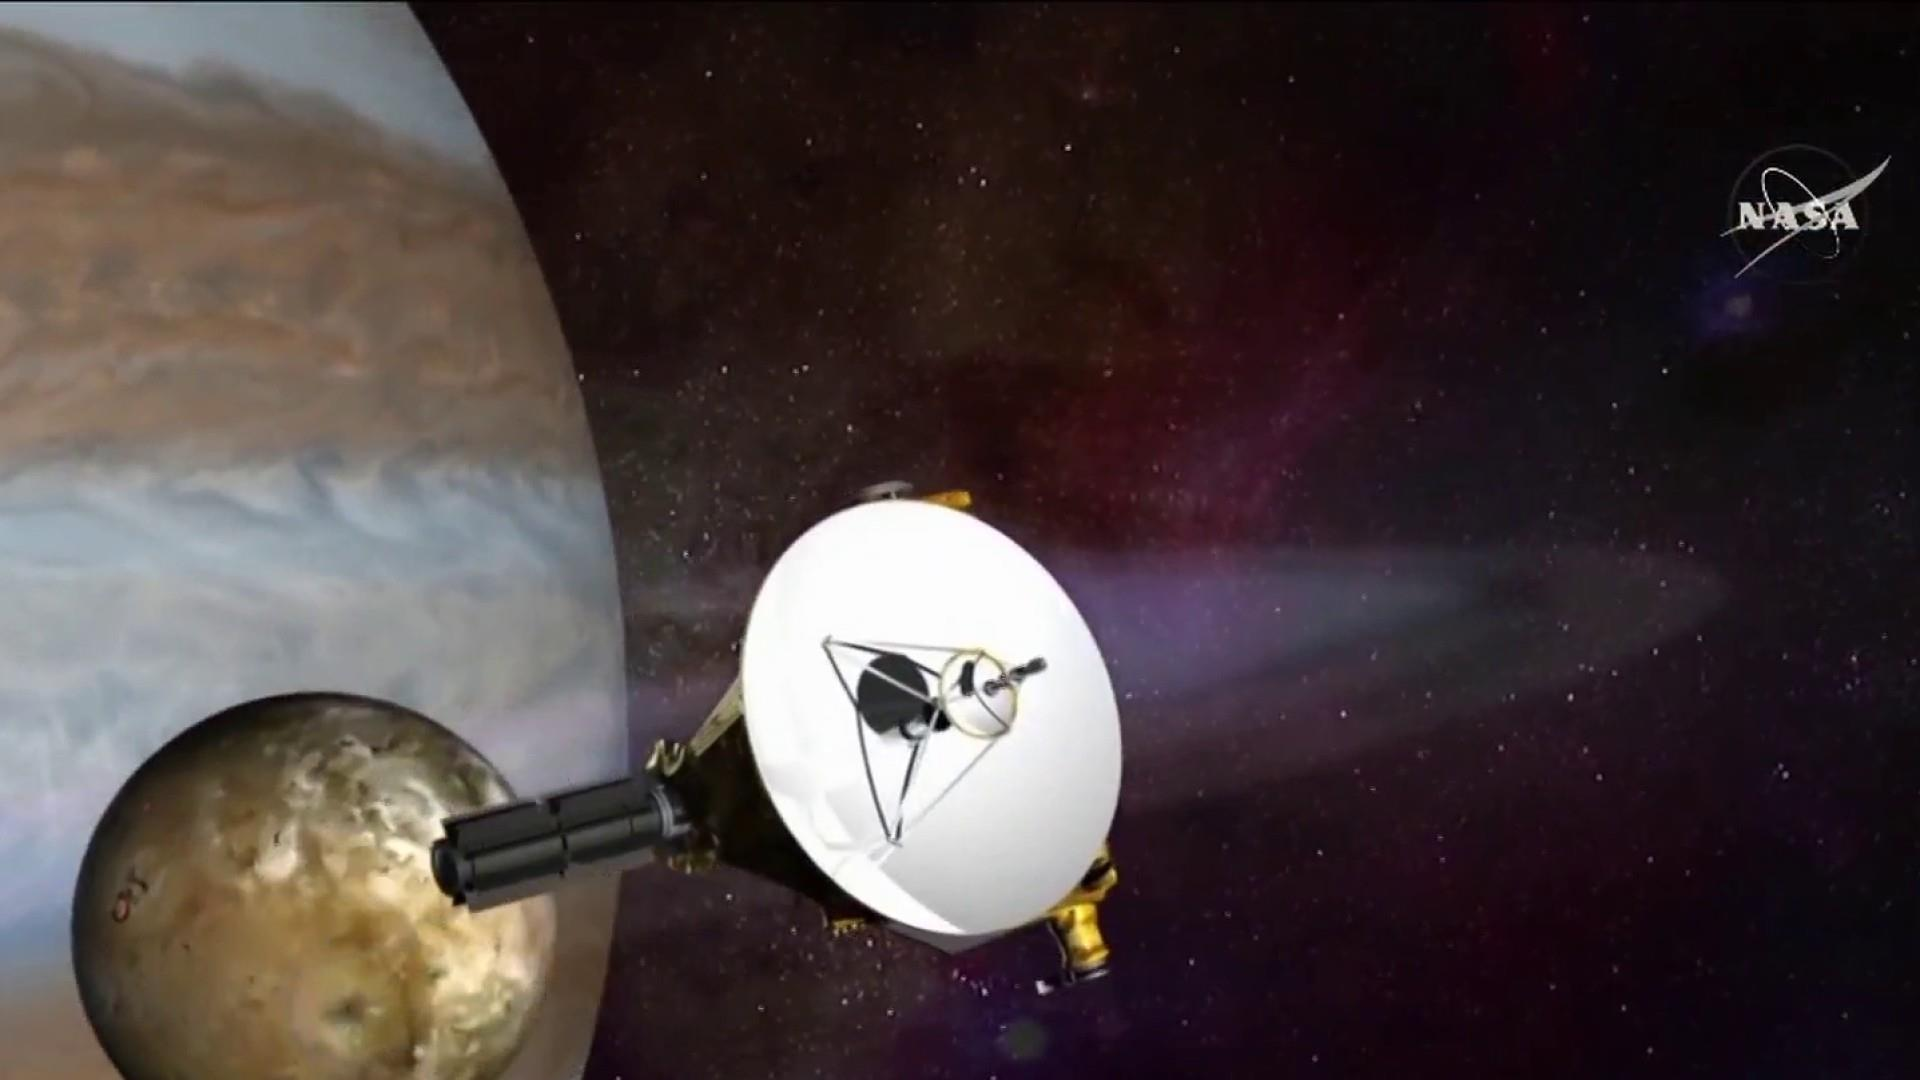 2019 Kicks Off With New Horizons Flyby In What Could Be Big Year For